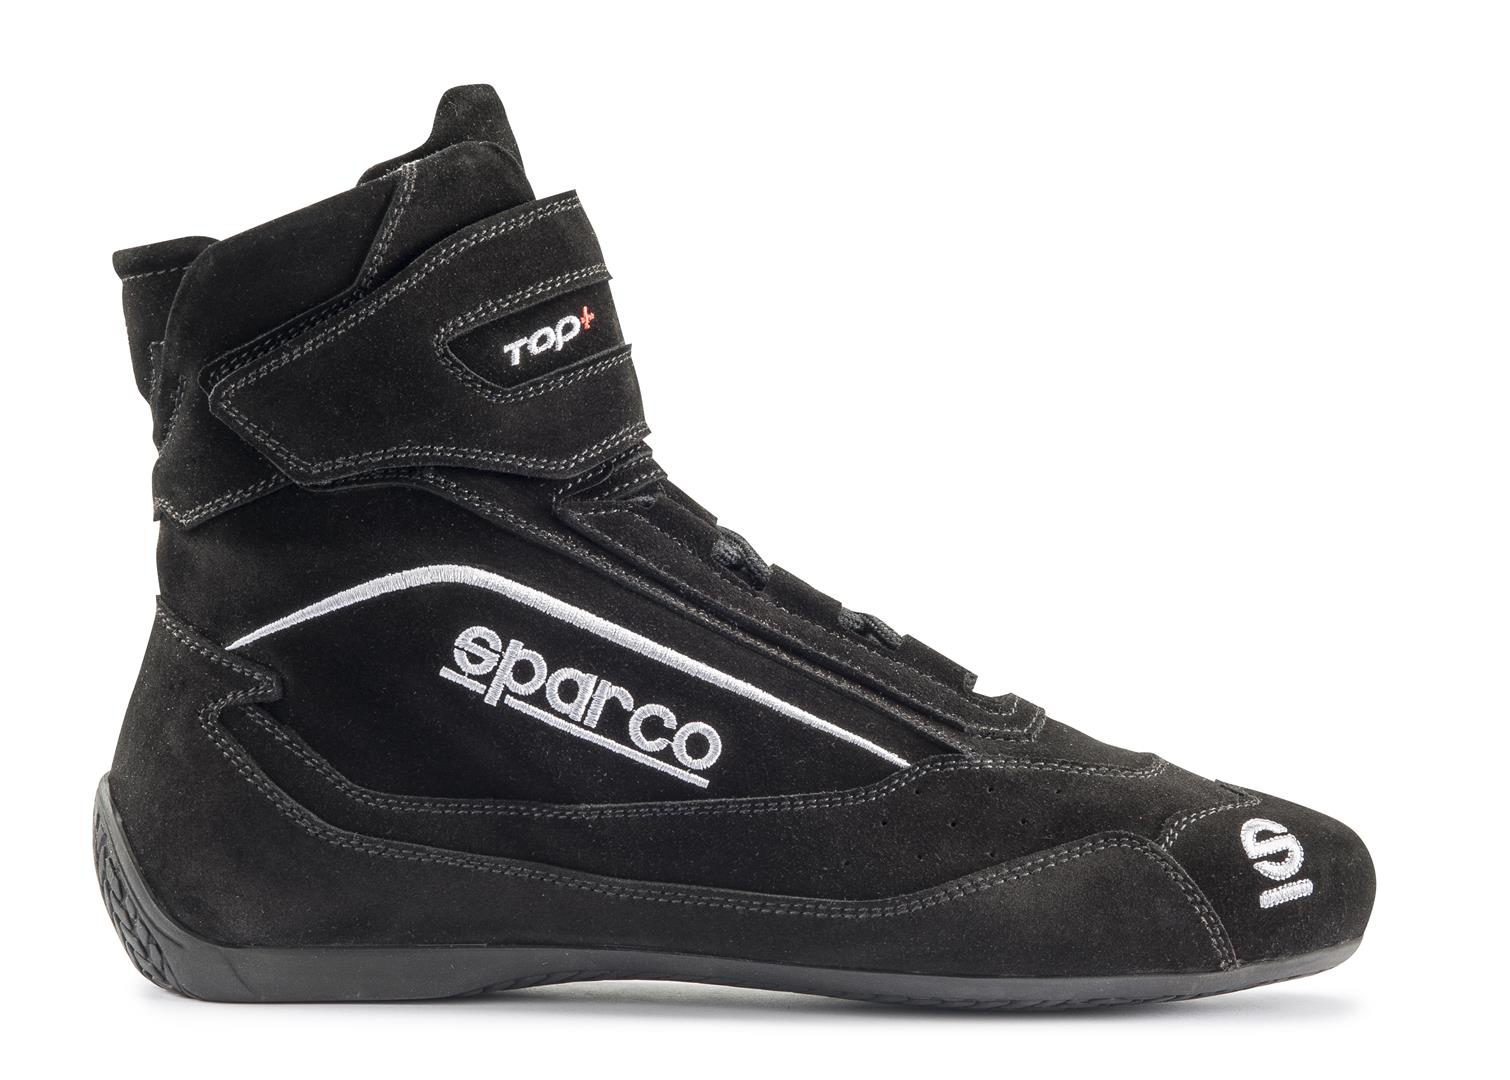 Sparco Black Top+ SH-5 Driving Shoes EU 38 | US 7 - 00121038NR